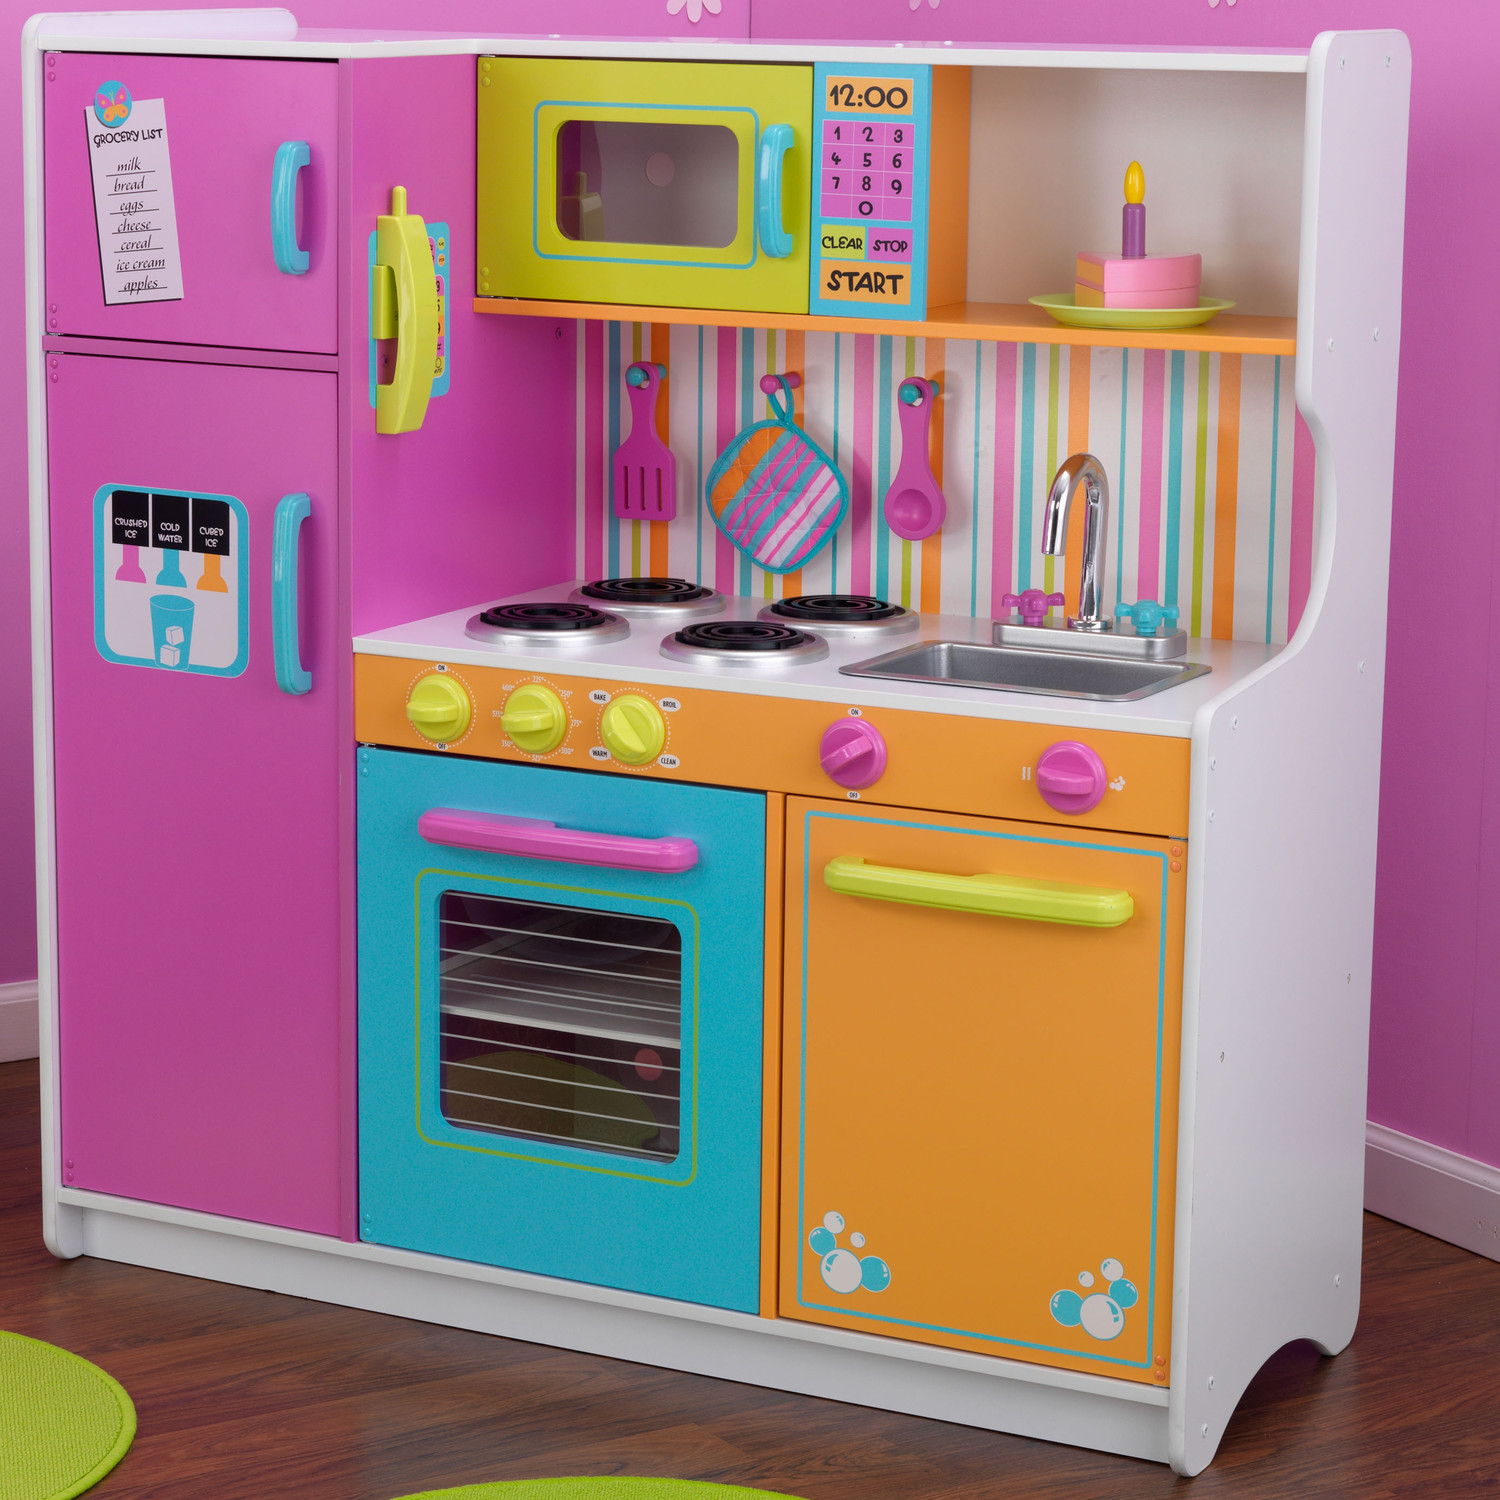 Kidkraft Large Kitchen Set